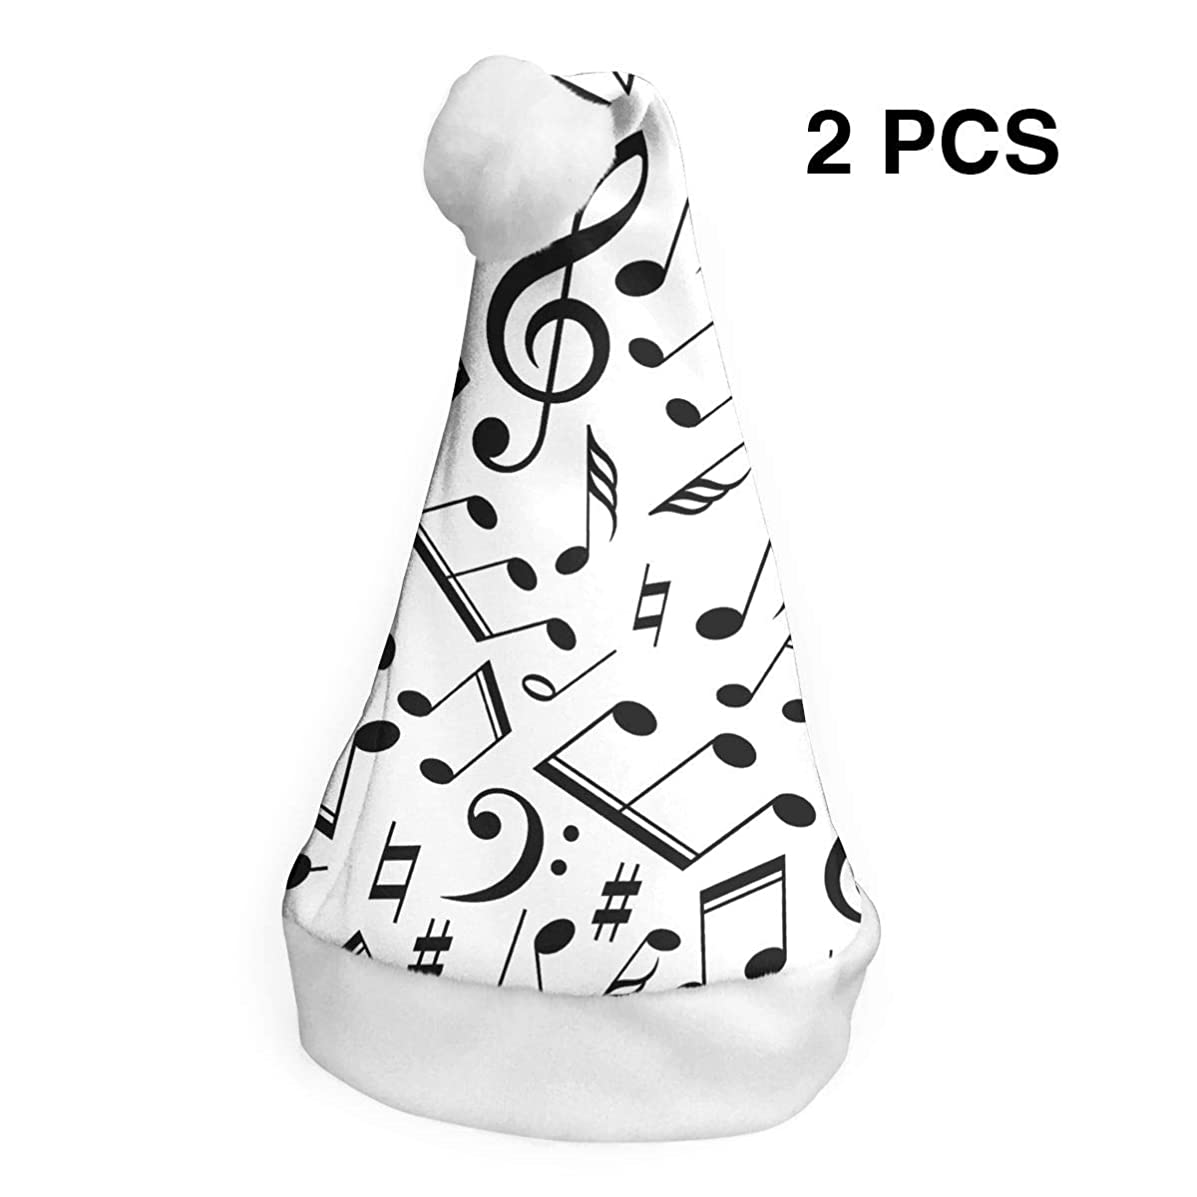 Santa Claus Hat Musical Notes Merry Christmas Hats Adults Children Costume Xmas Decor Party Supplies (2-Pack)